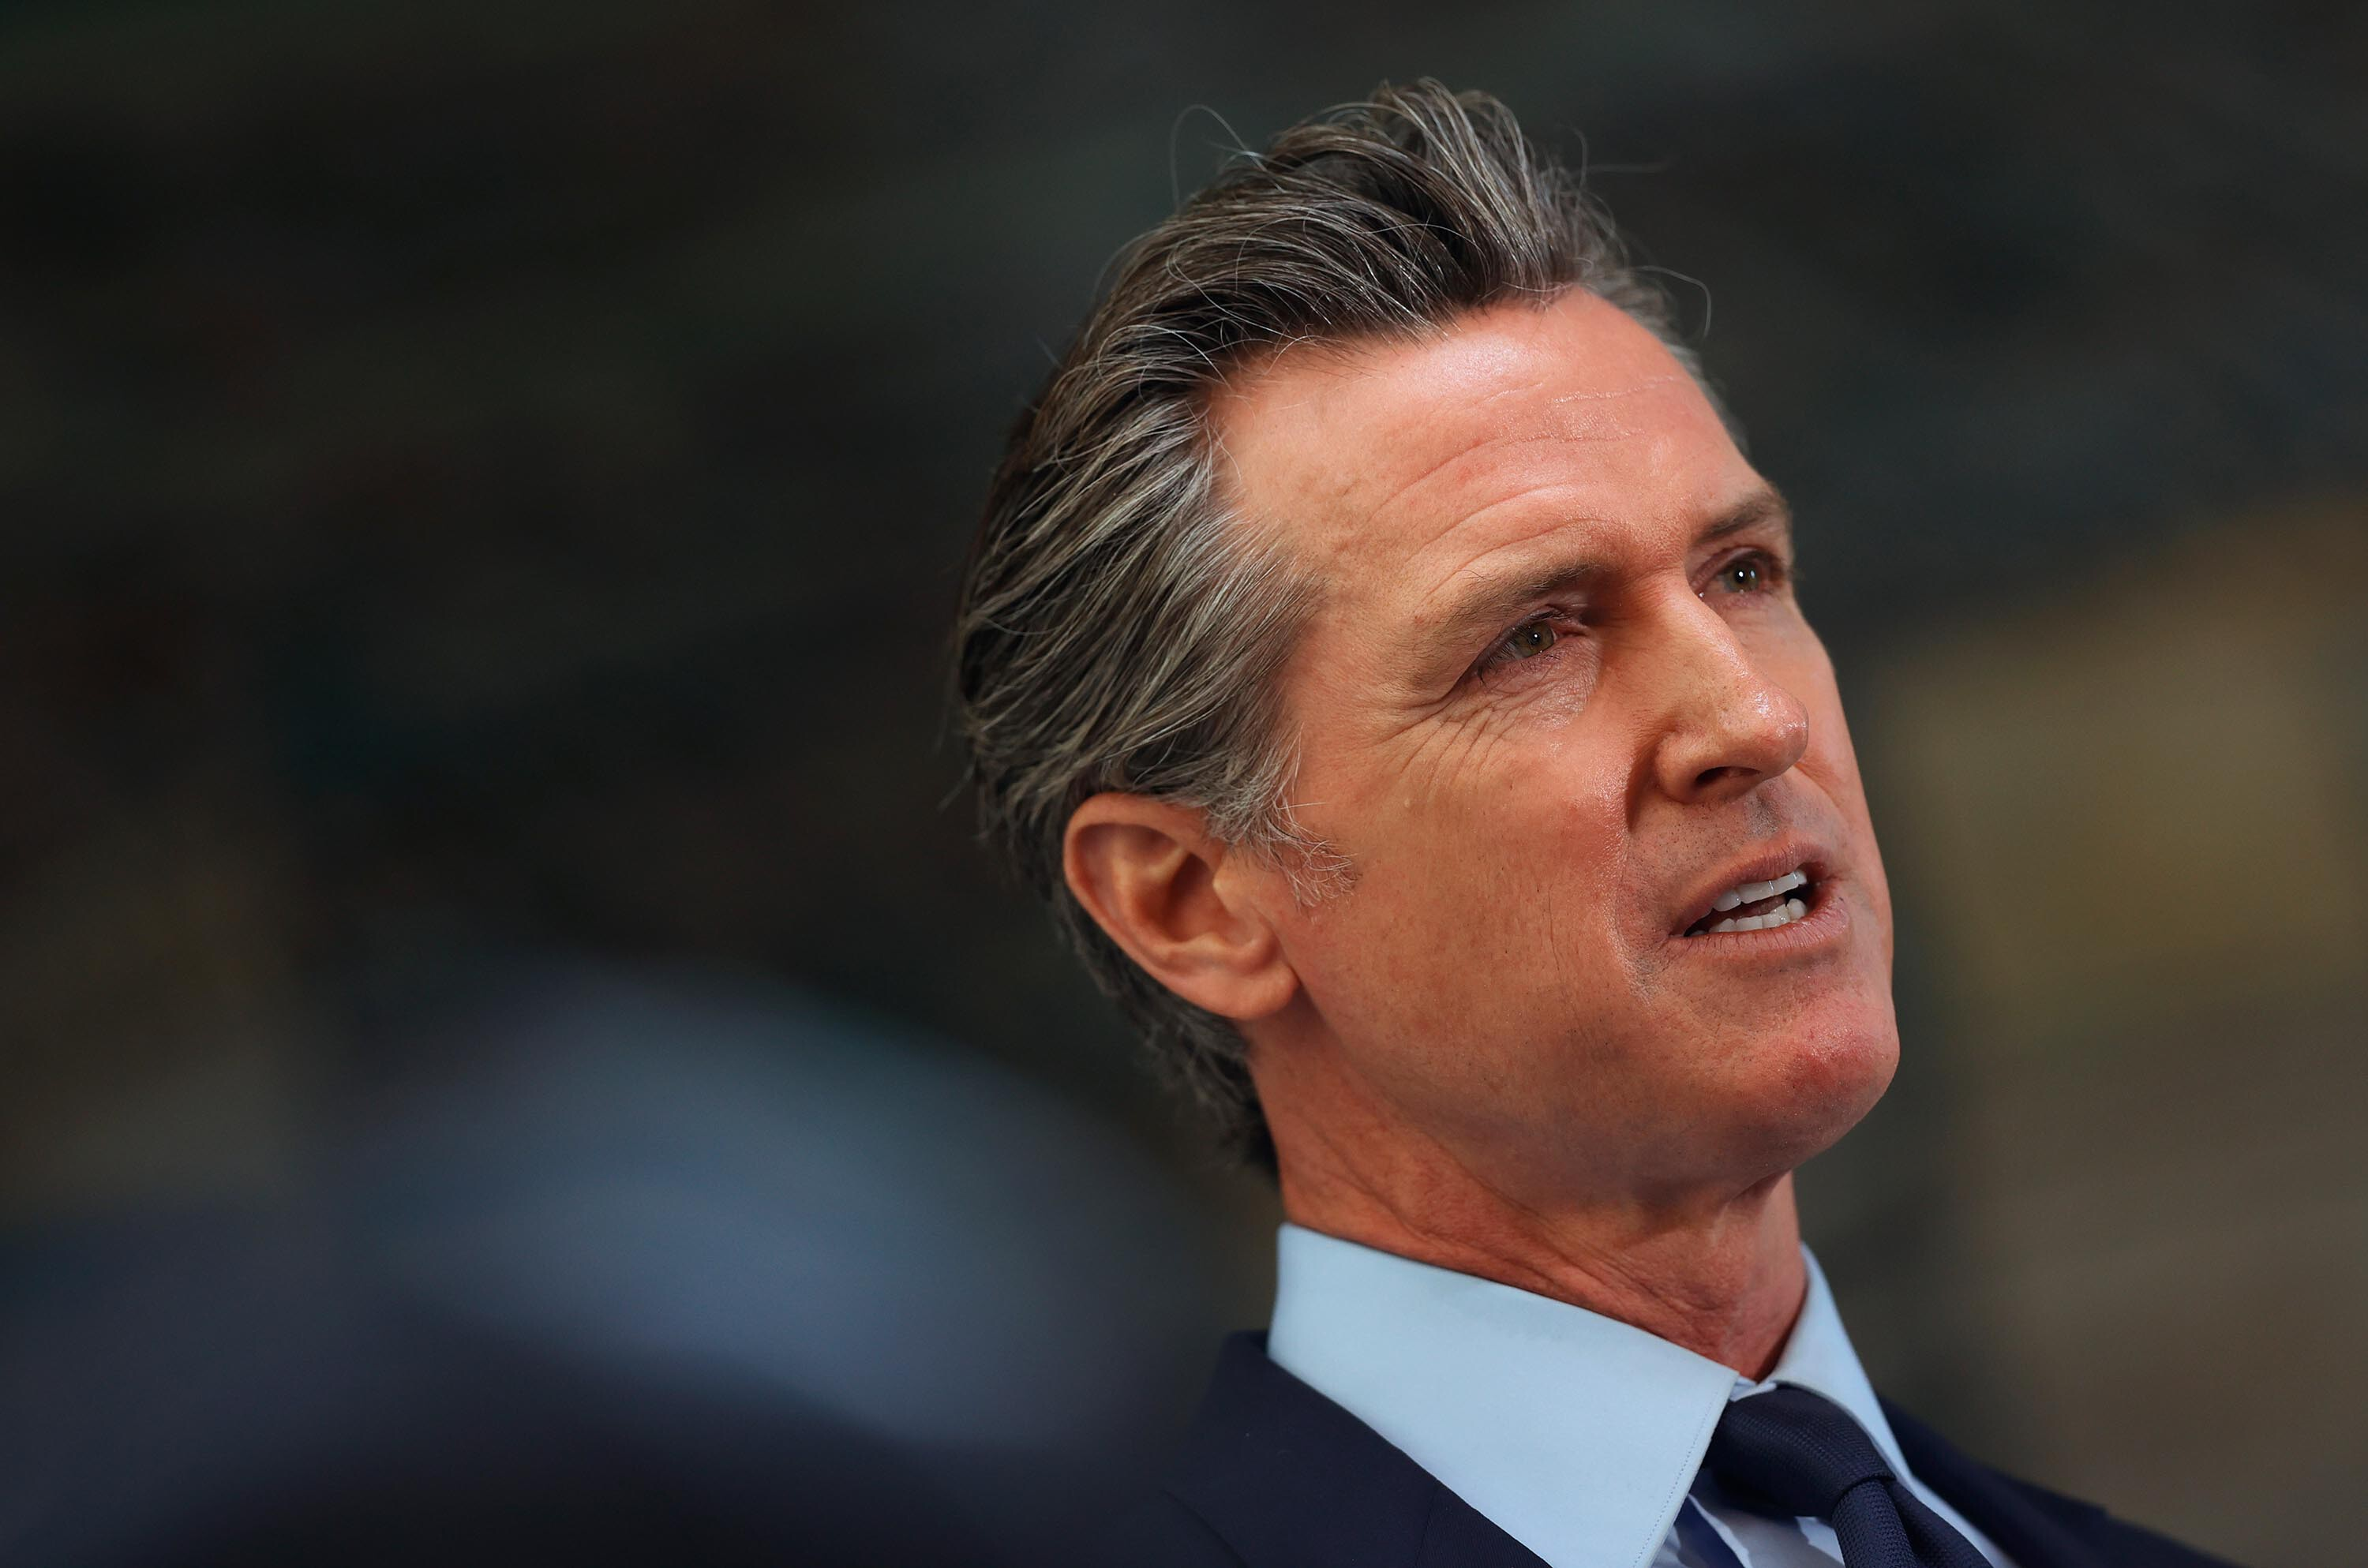 California to require proof of Covid-19 vaccination or regular testing for all state employees and health care workers